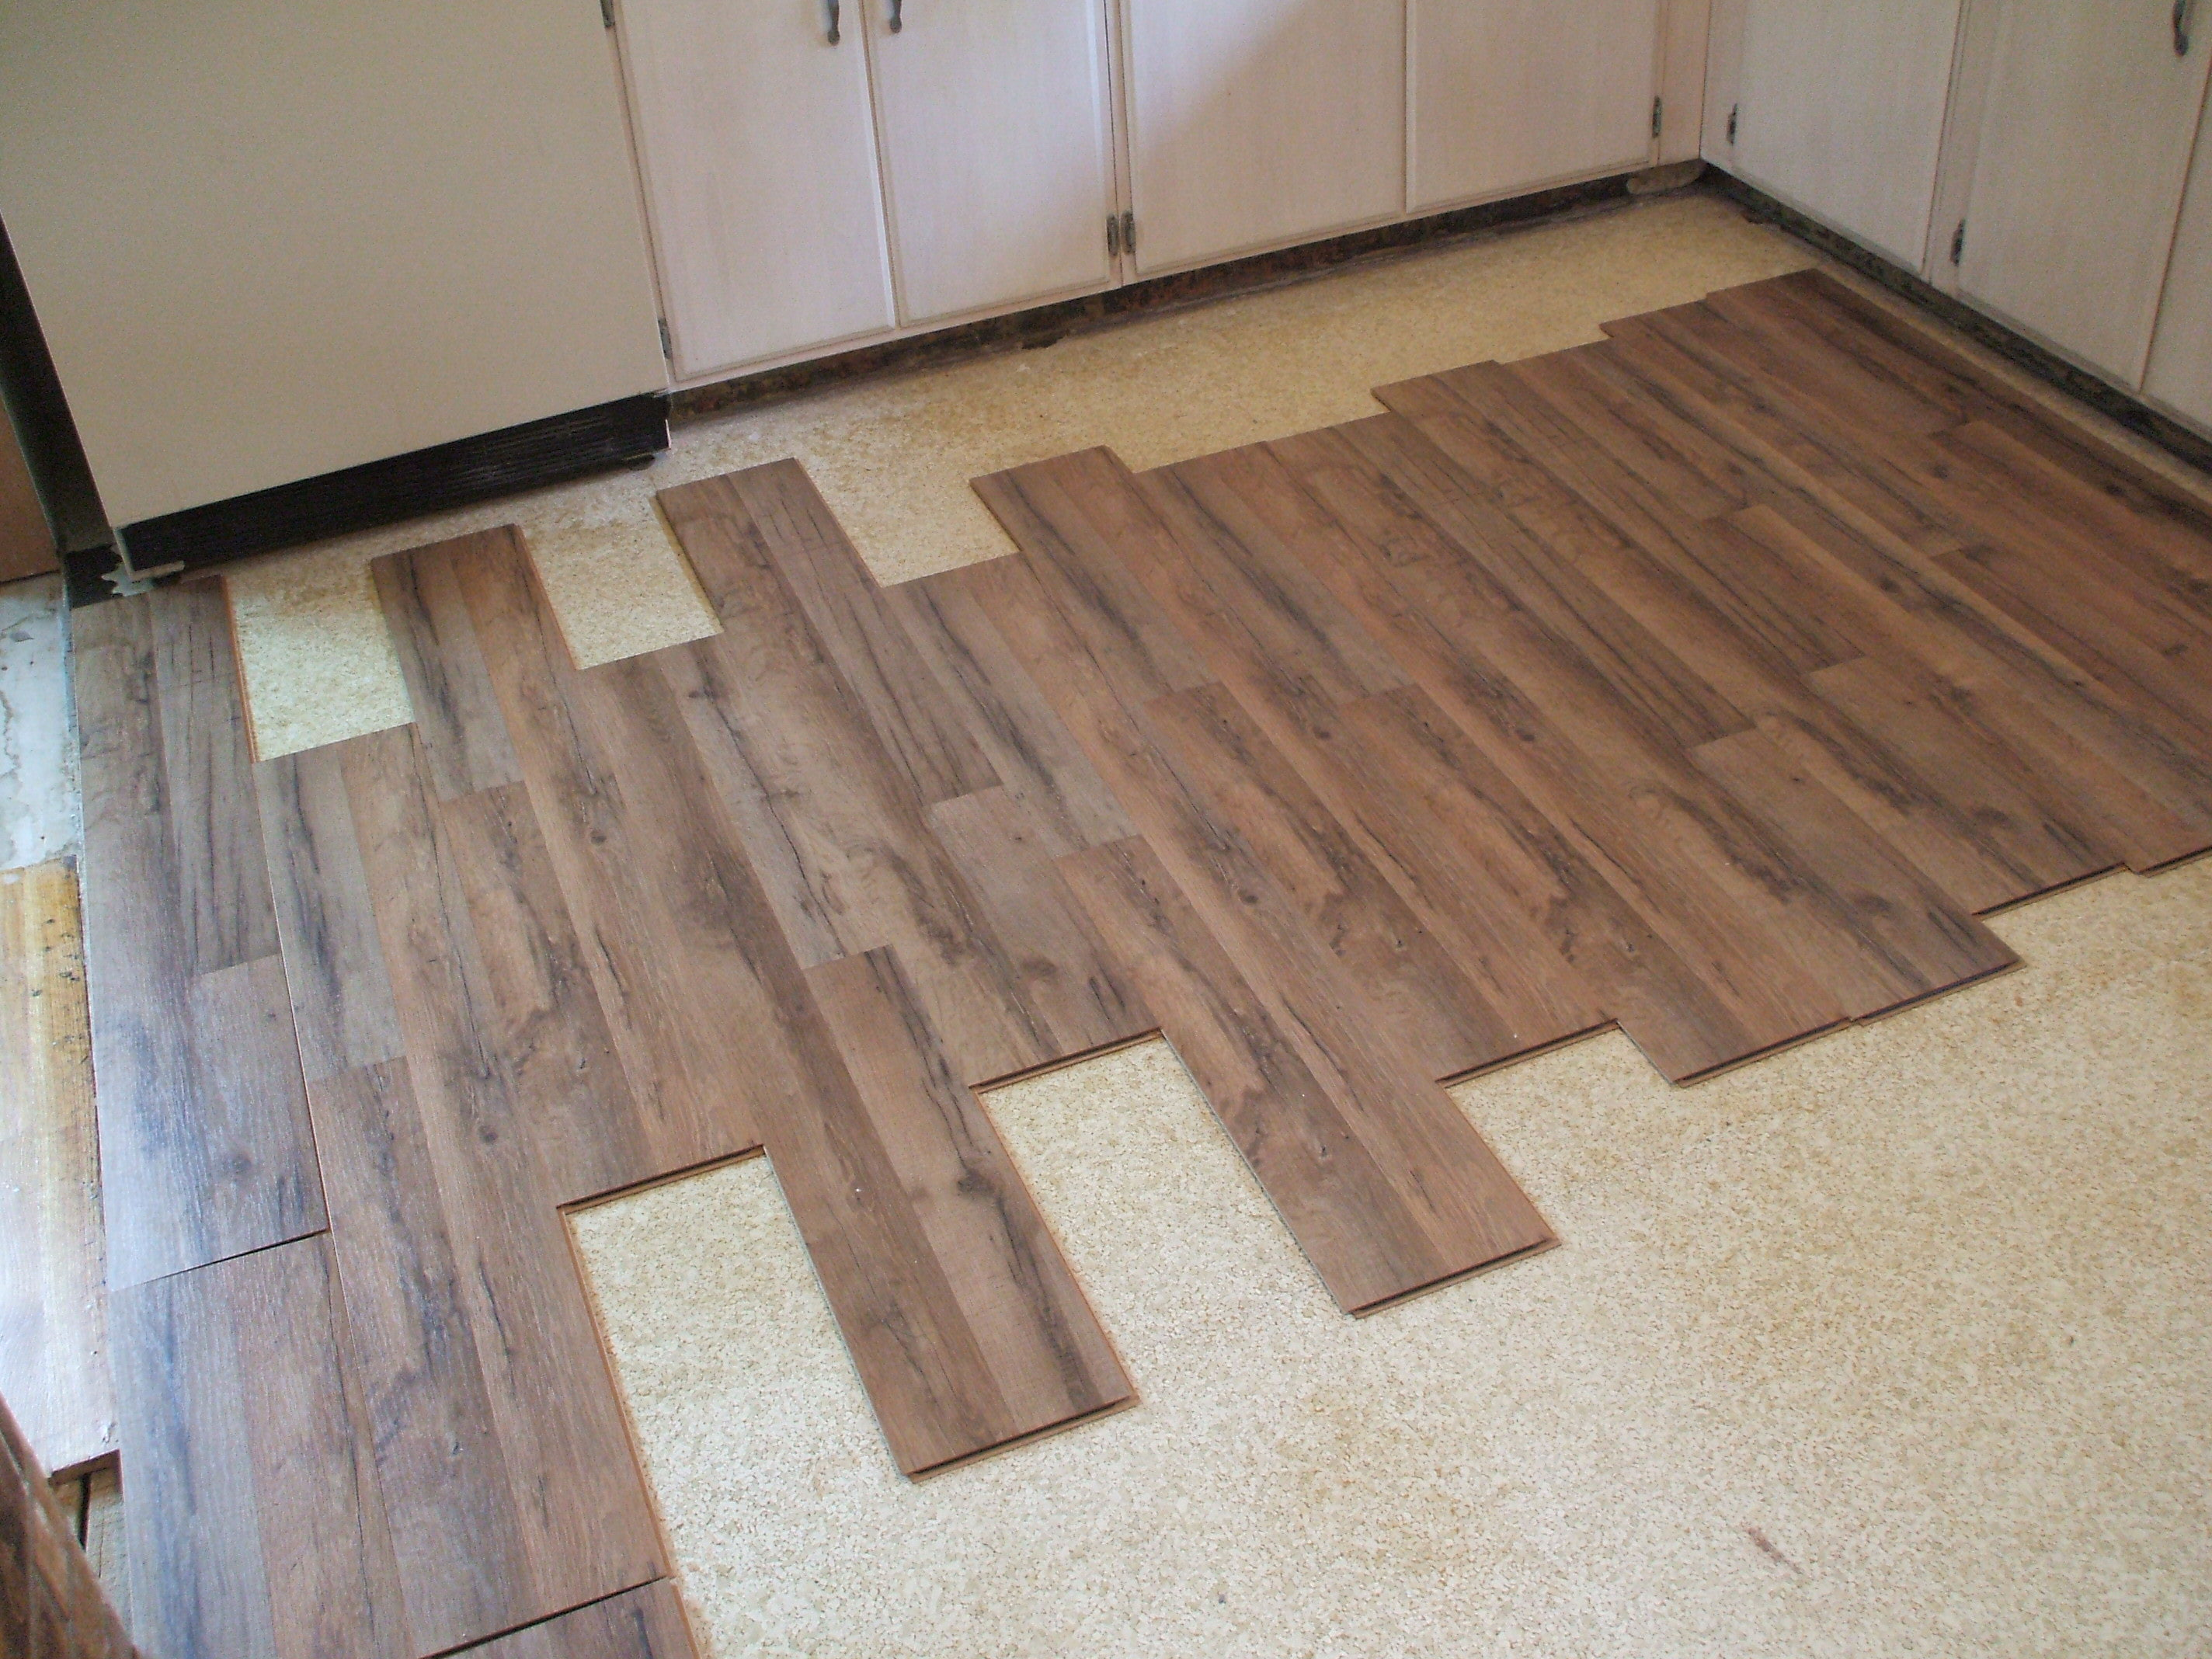 Laminate Floors For Kitchens Flooring Options For Your Rental Home Which Is Best